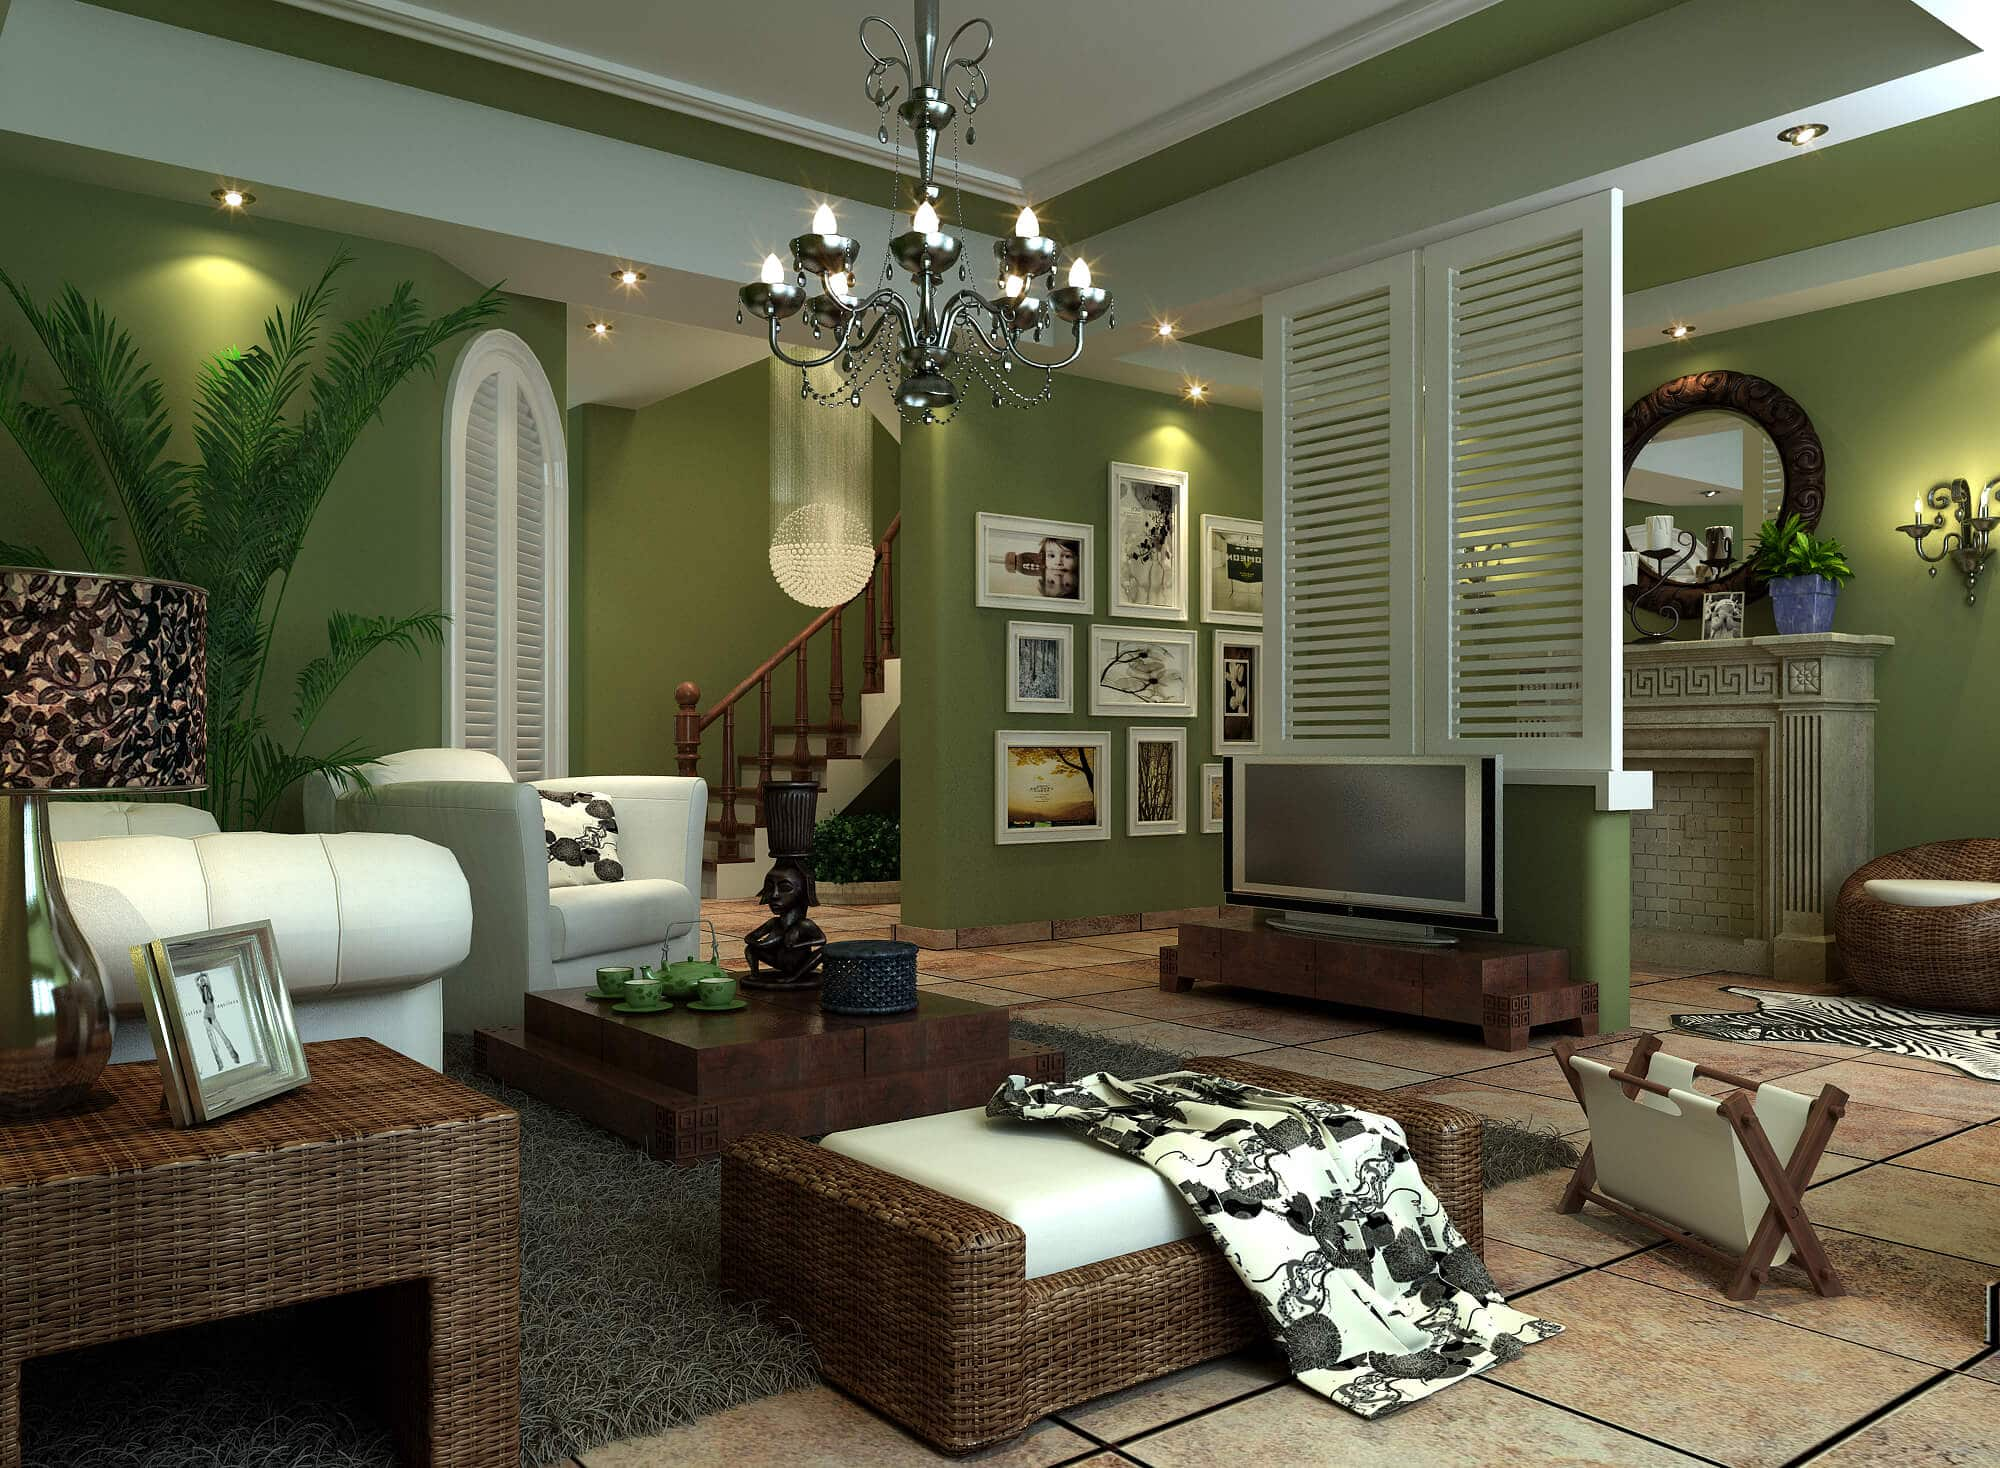 Green living room with wicker furniture, artwork and chandelier